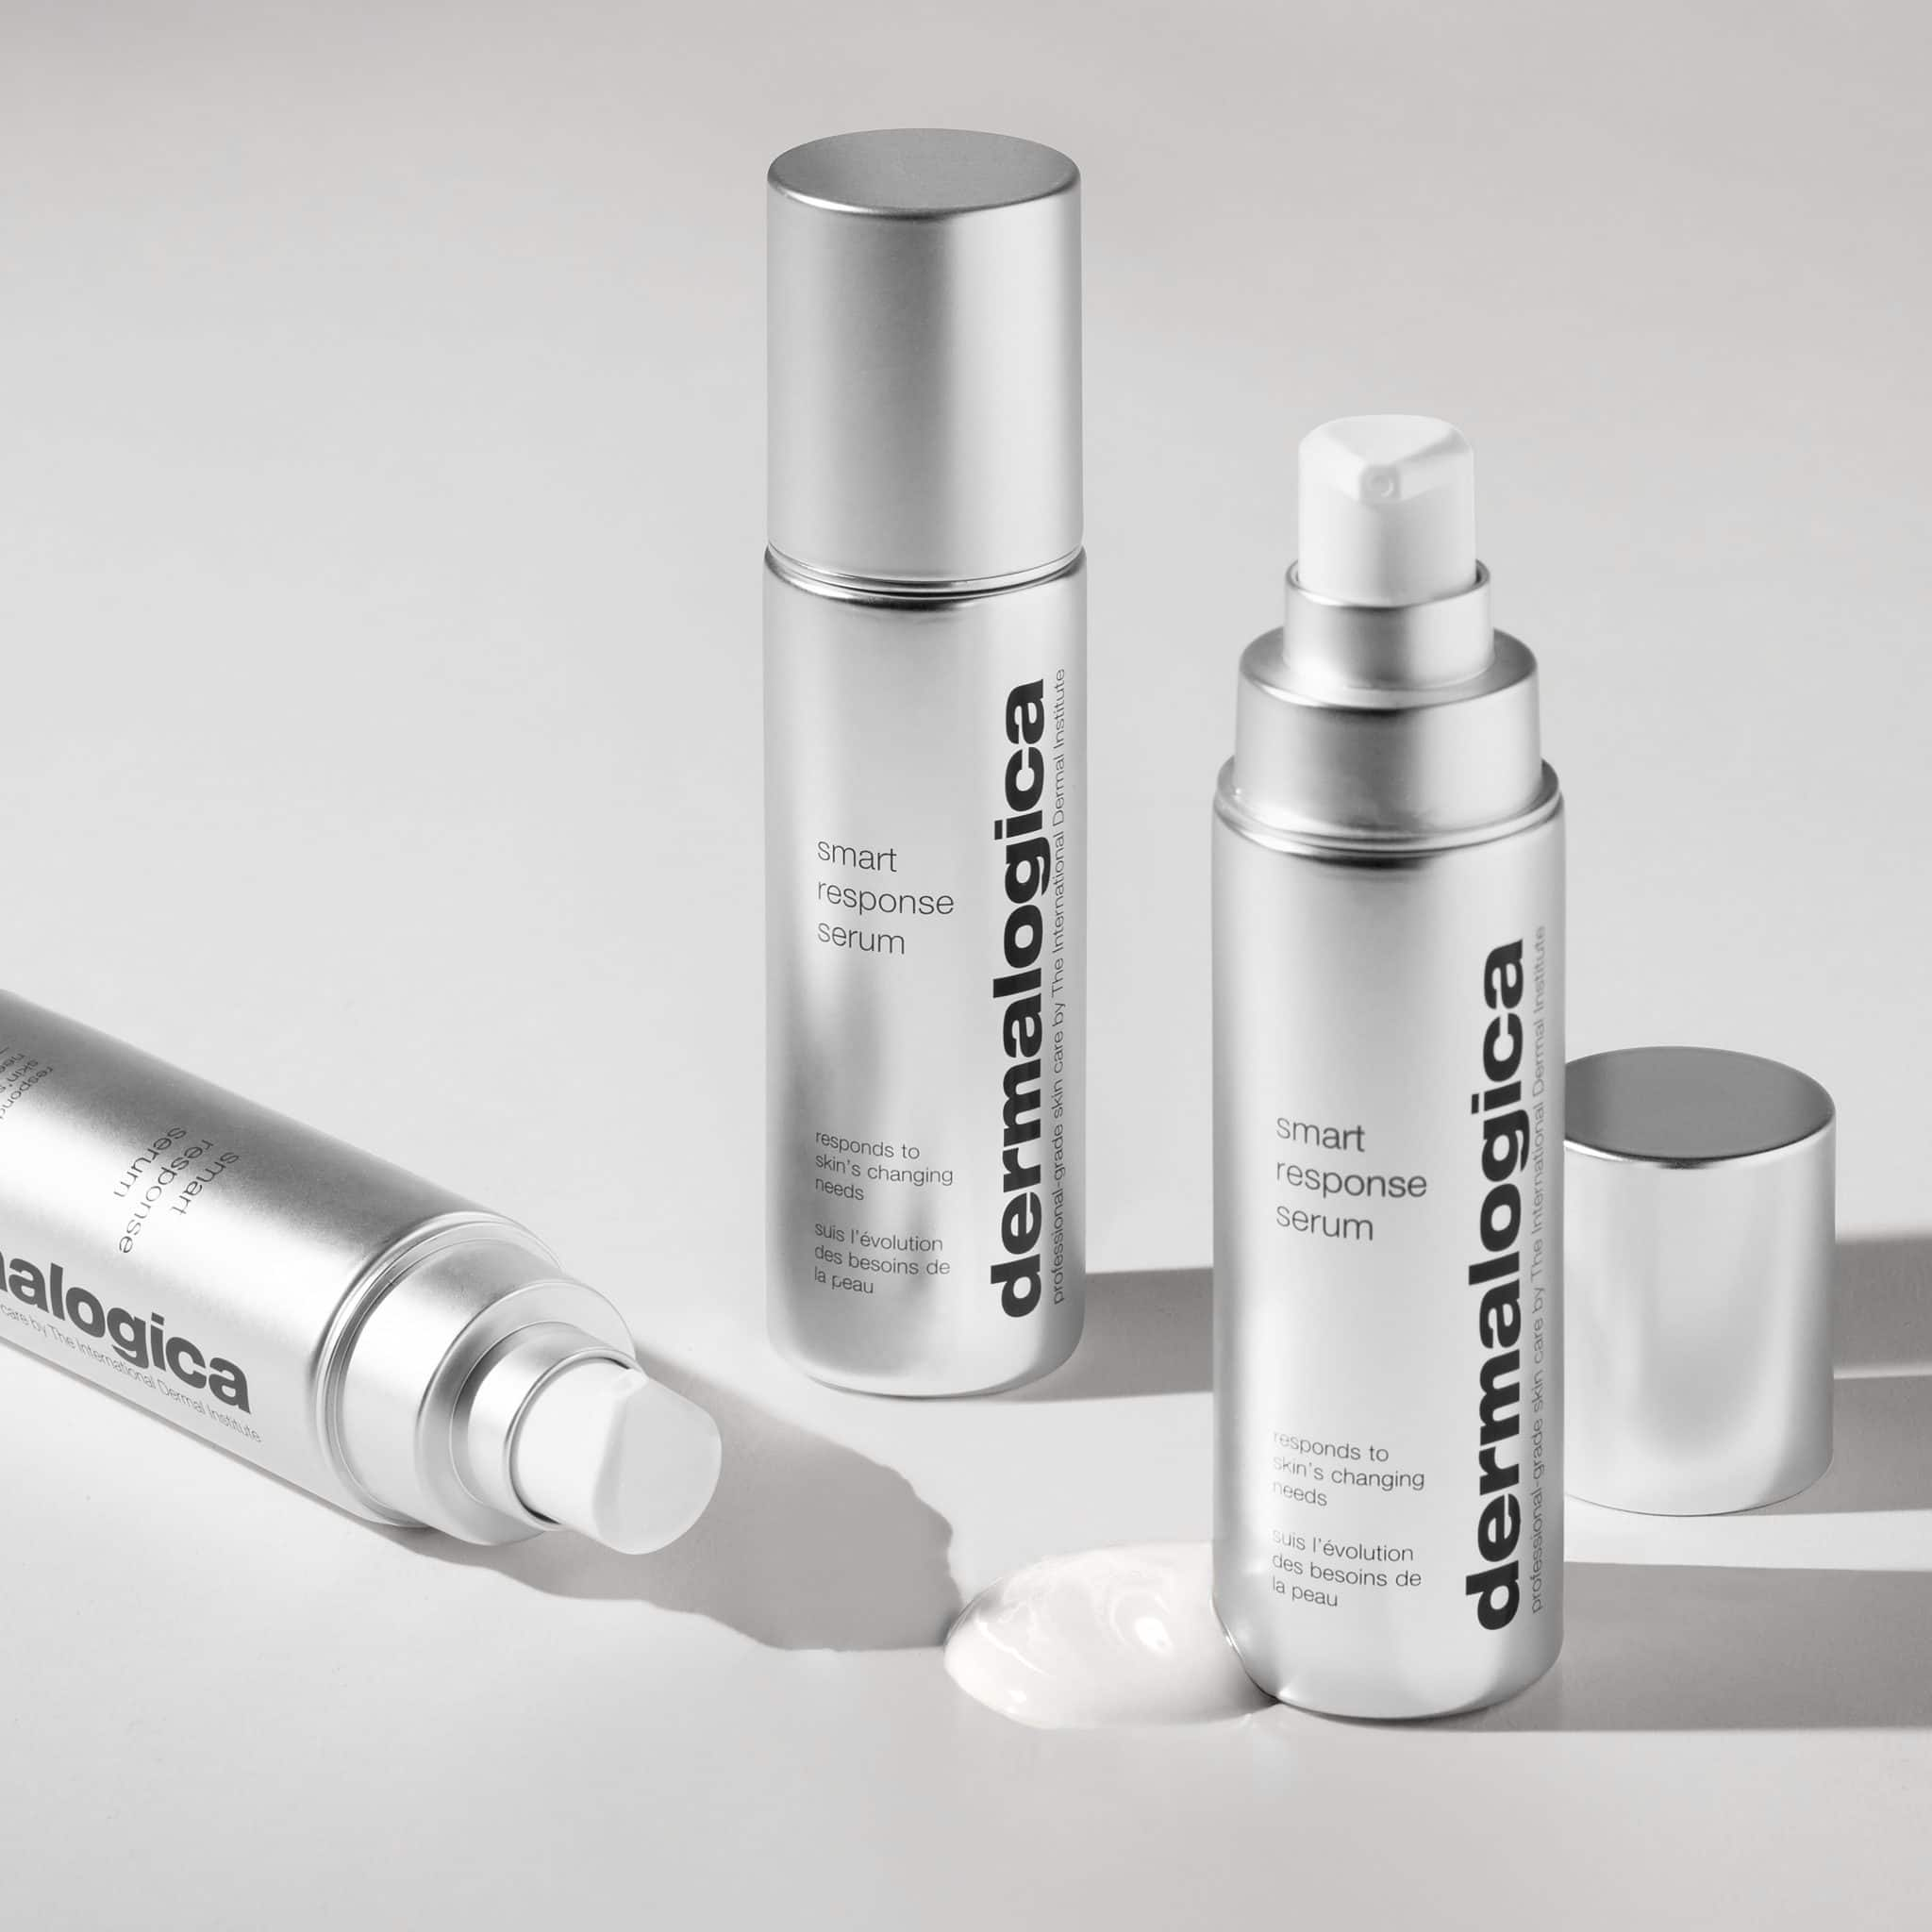 Product Multiples With Product Form 1x1 Smart Response Serum scaled